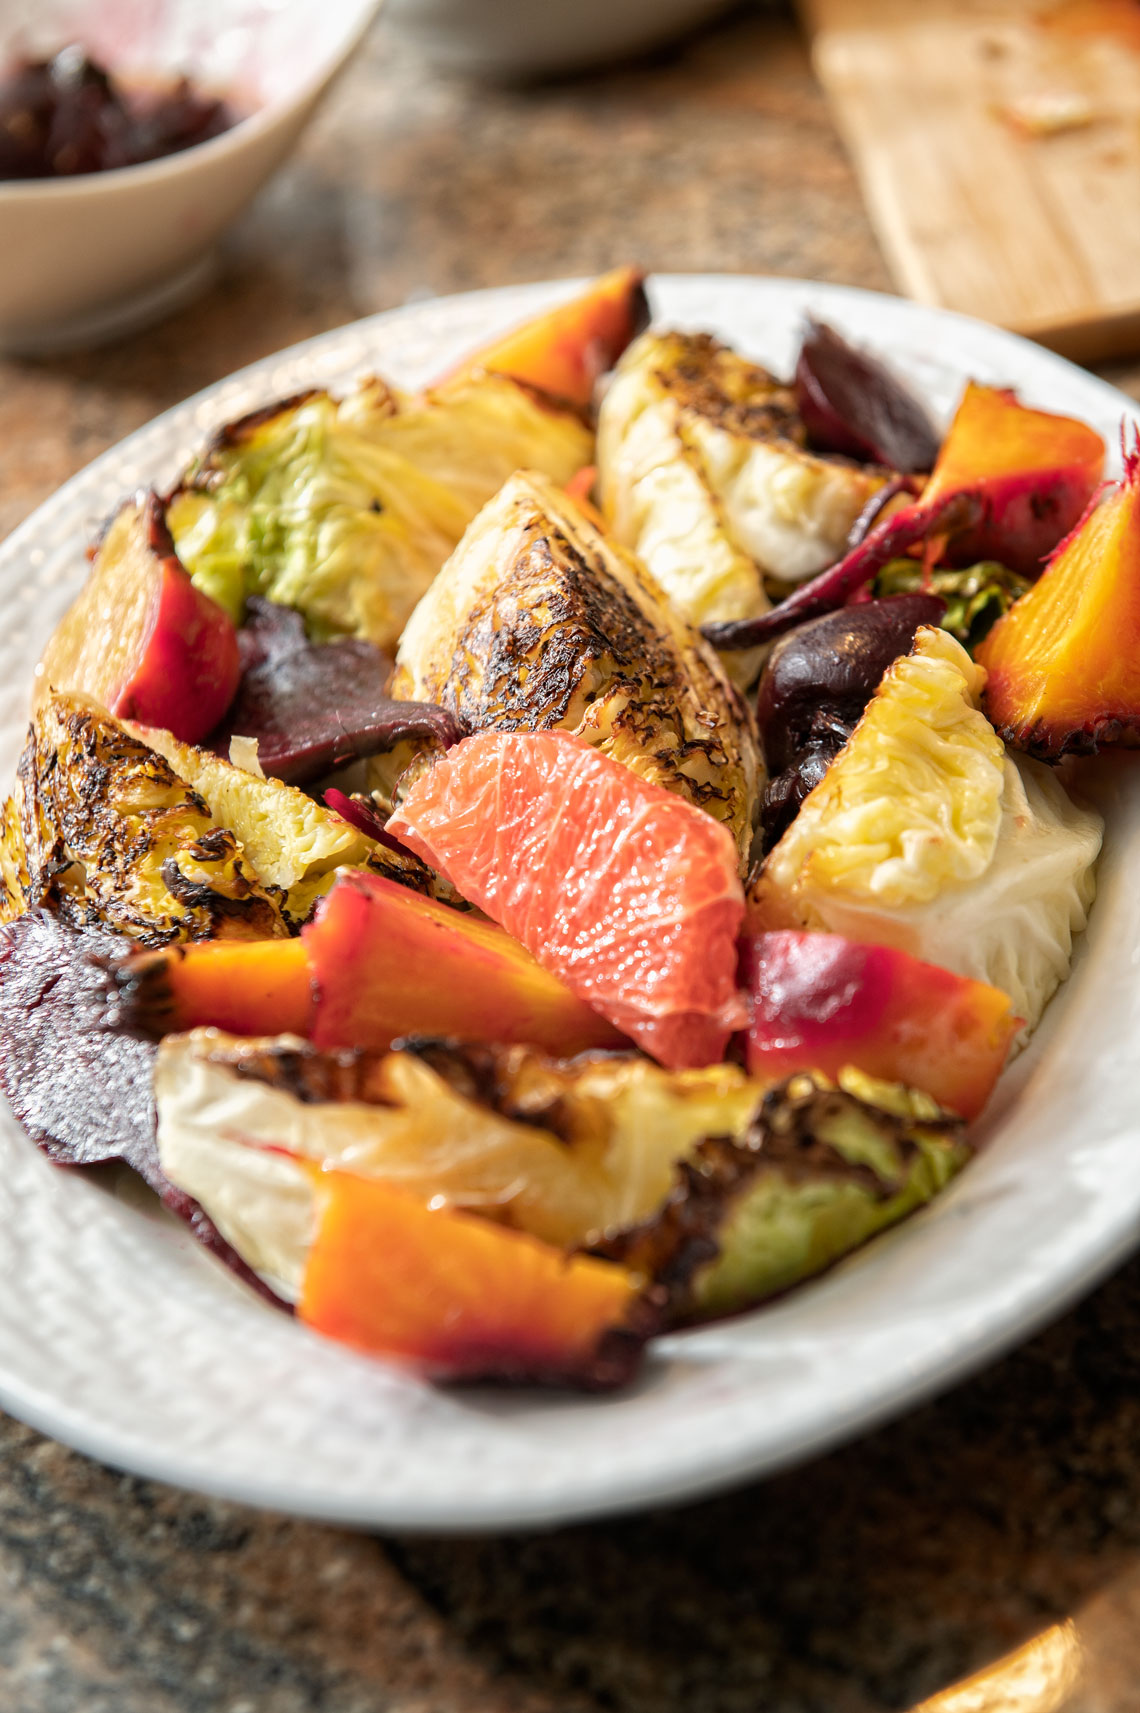 Pan-Roasted Cabbage and Beet Salad